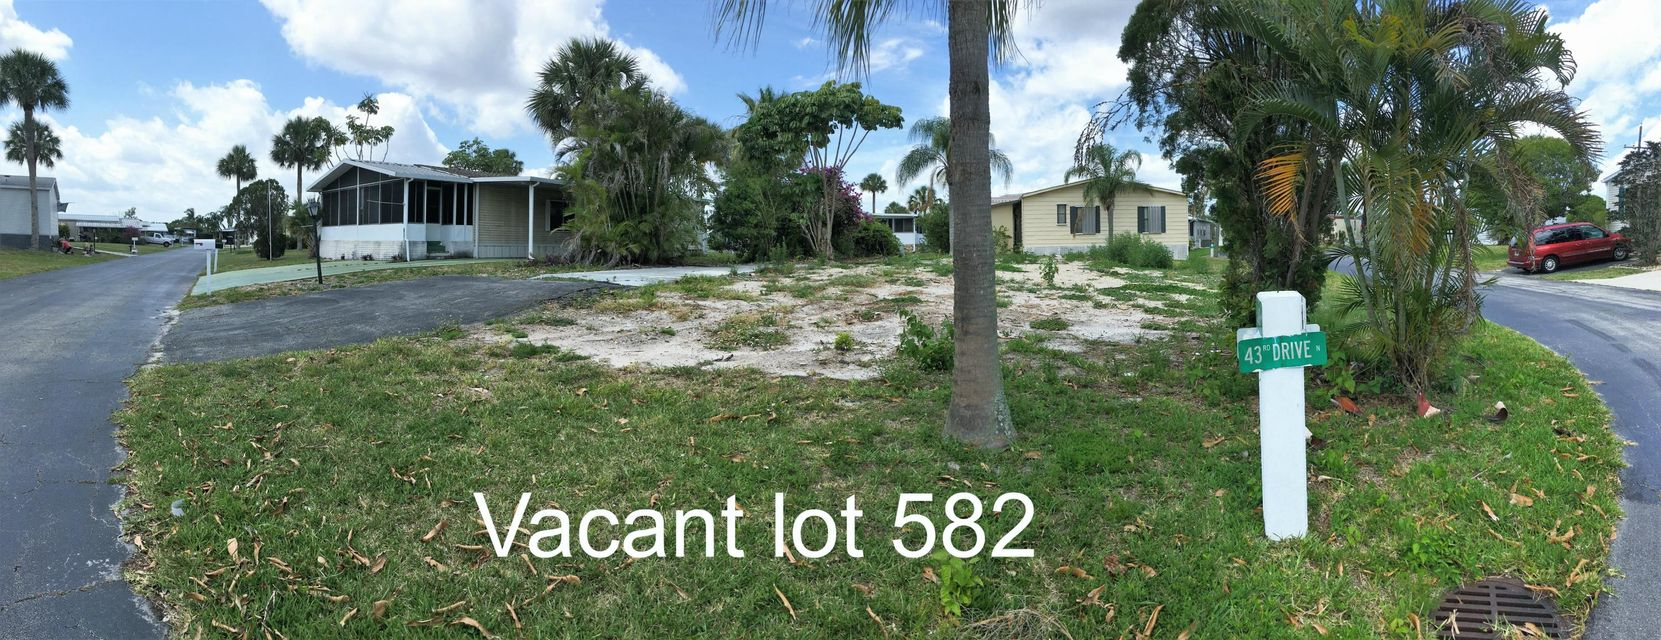 Additional photo for property listing at 7464 43rd Drive N 7464 43rd Drive N West Palm Beach, Florida 33404 États-Unis